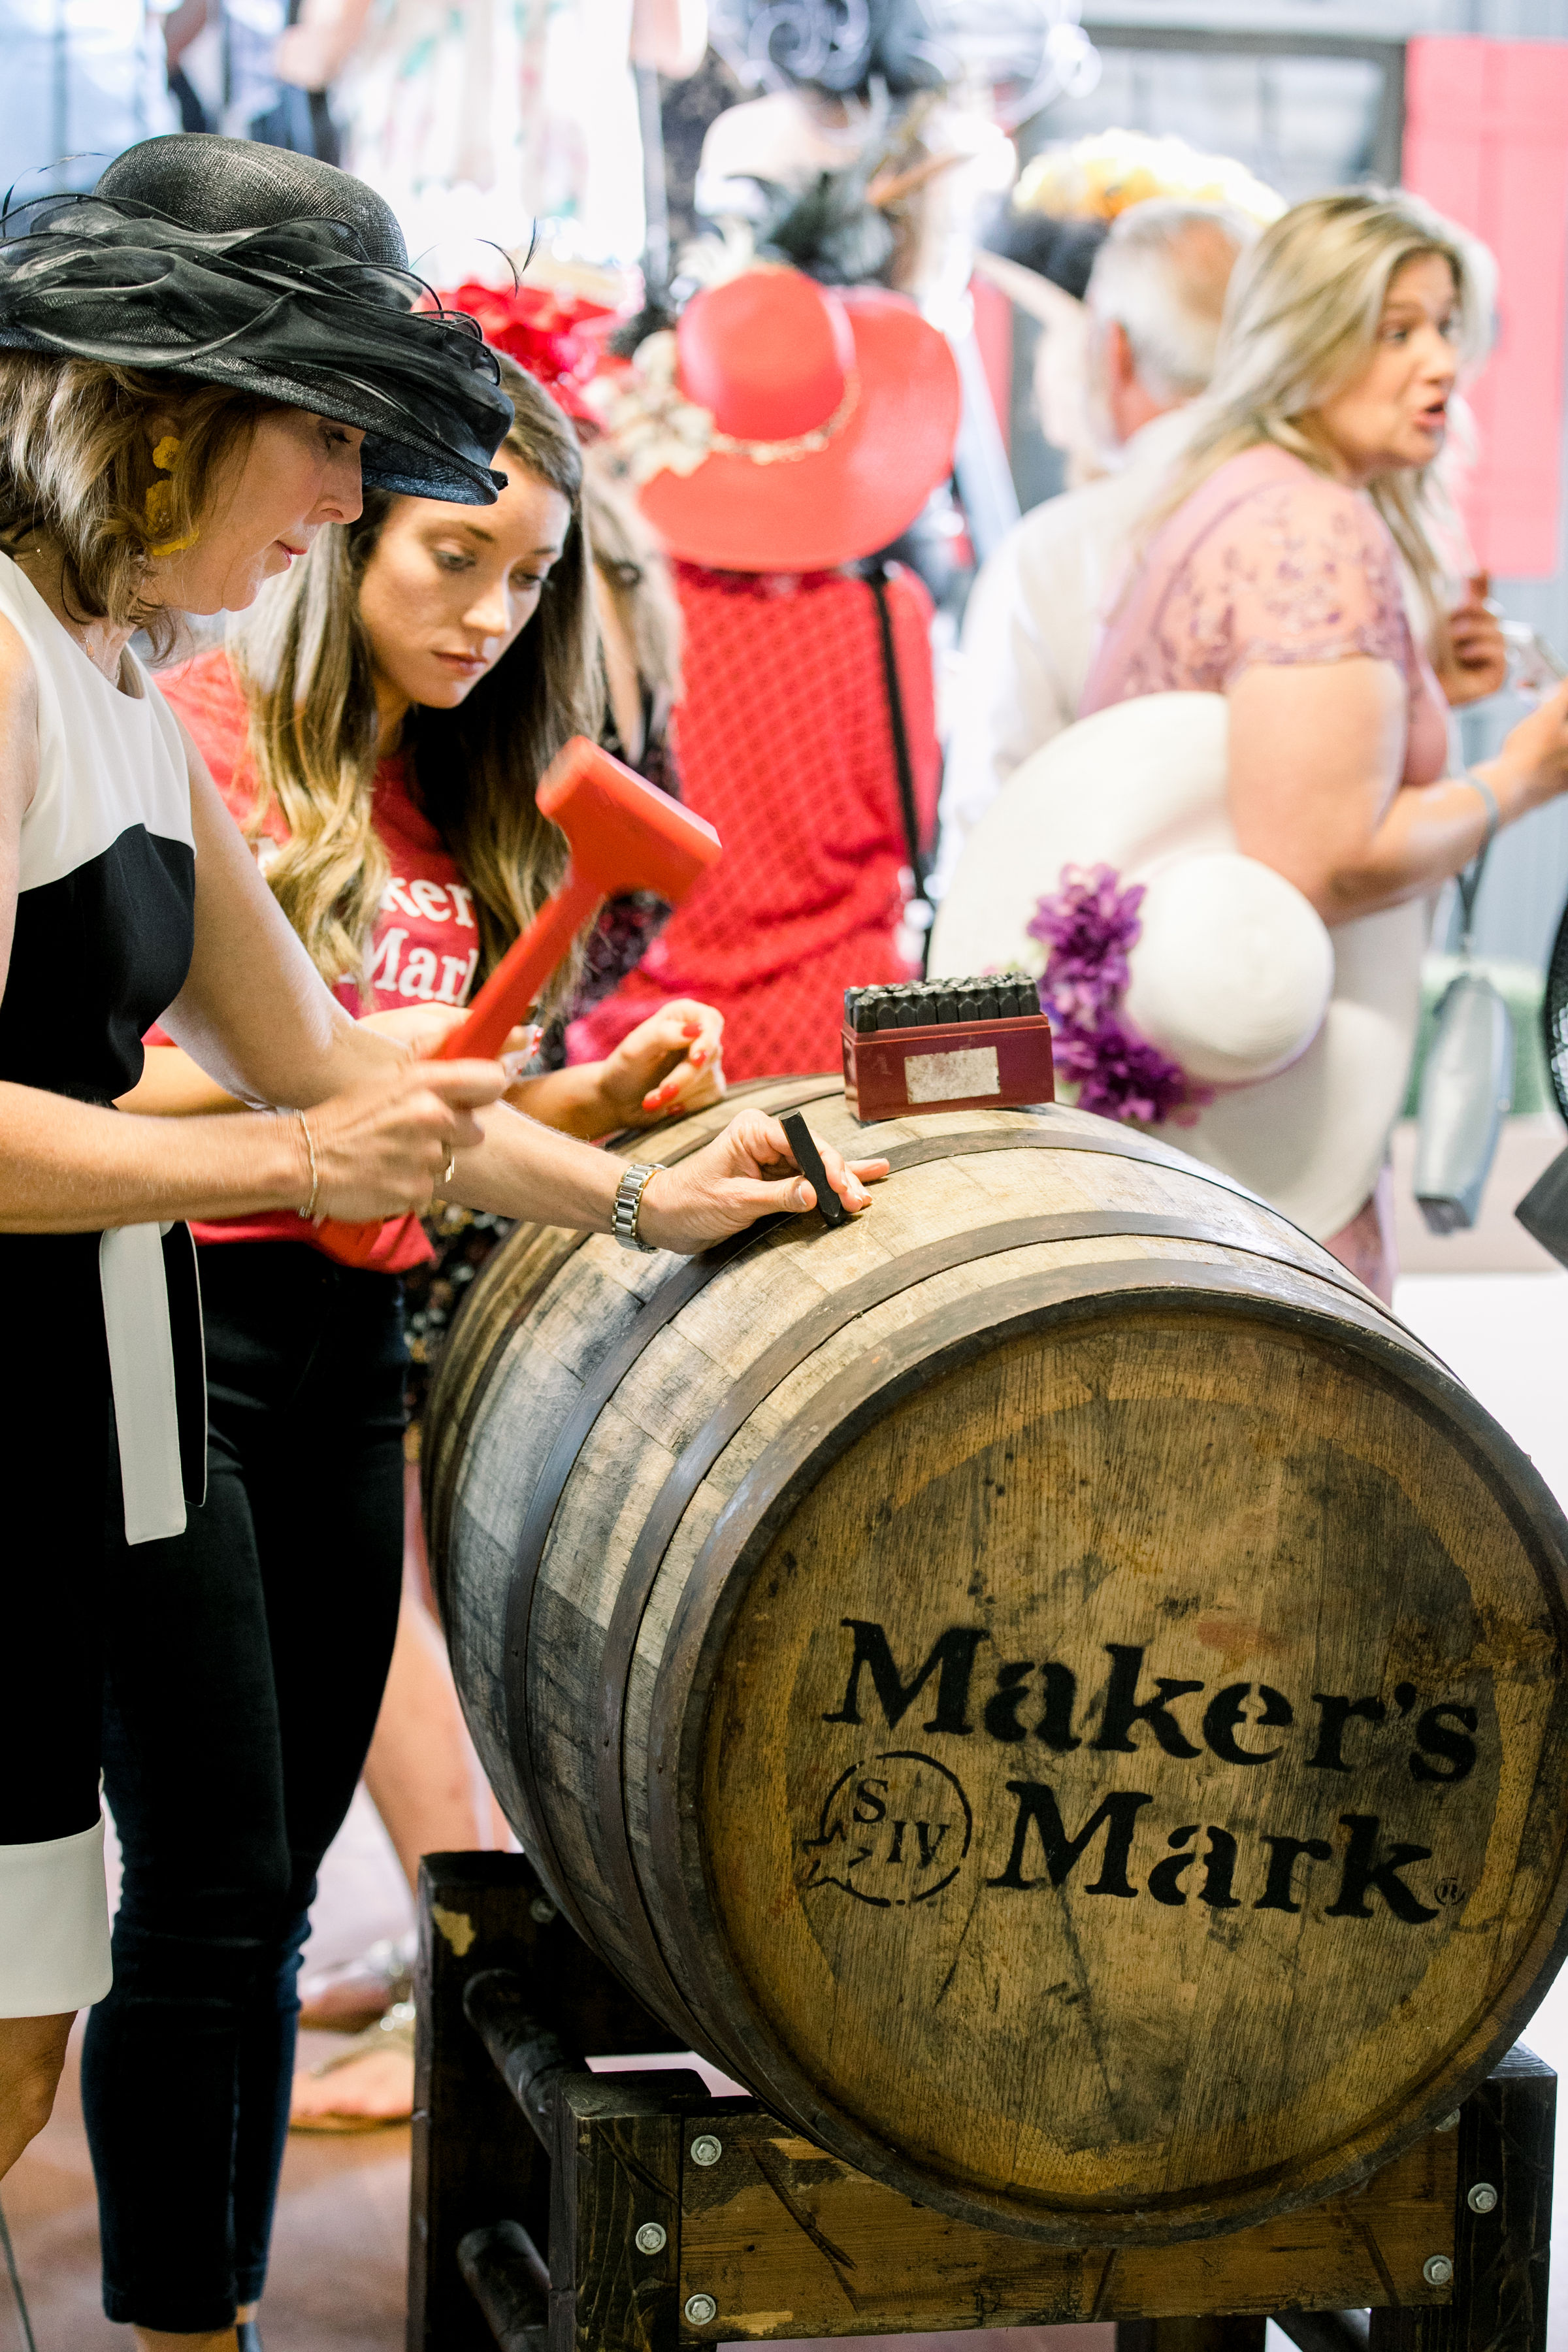 Makers Mark Bourbon Barrel at Keeneland for Derby Day. Photo by The Malicotes